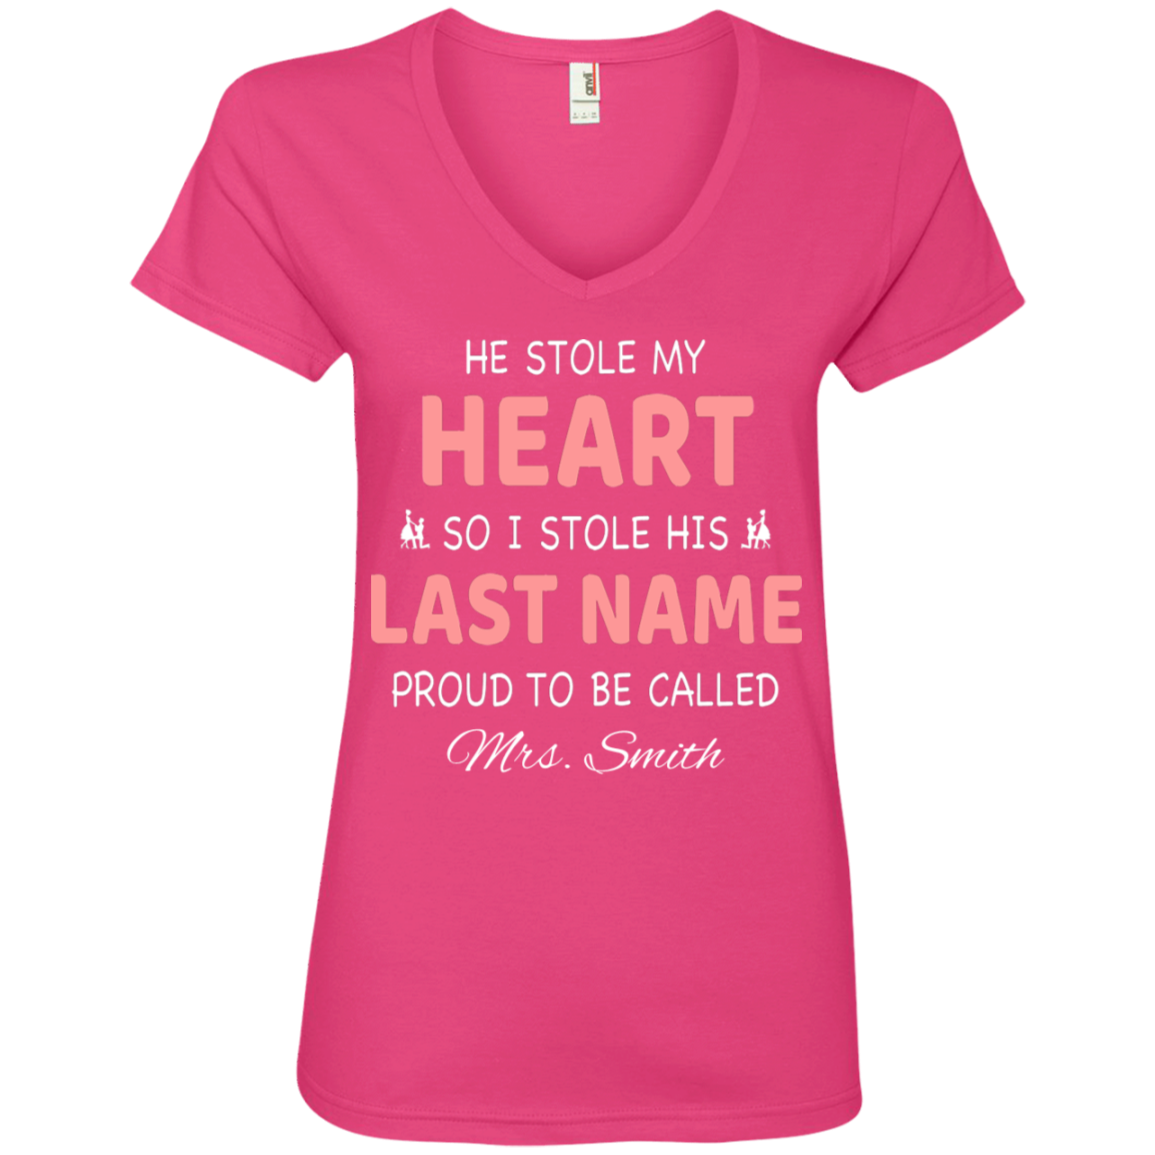 He Stole My Heart - Personalized T-Shirt - Need This Please